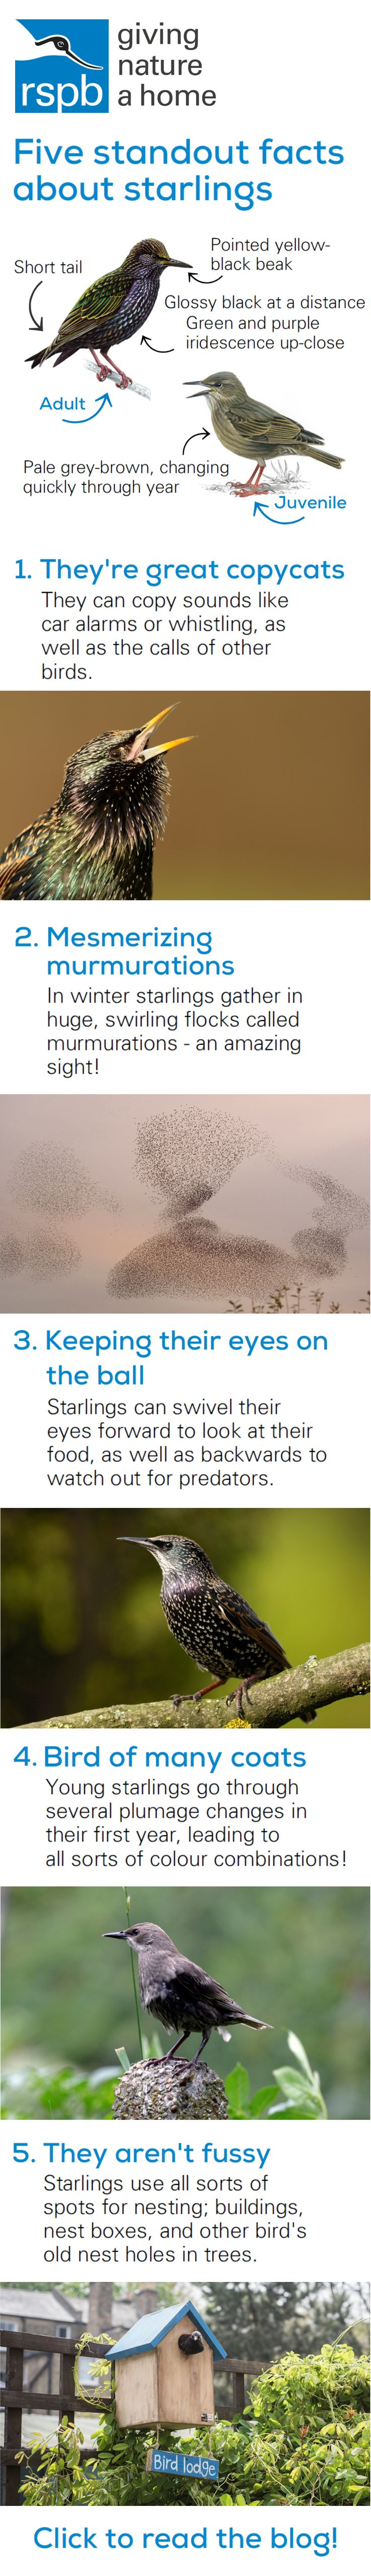 Five facts you need to know about starlings! Click the pin to find out more.  Birds, nature, UK, starlings, RSPB, beautiful, photography, art, colourful, illustration, wings, colour, animals, gardens spring, summer, pictures, trees, branches